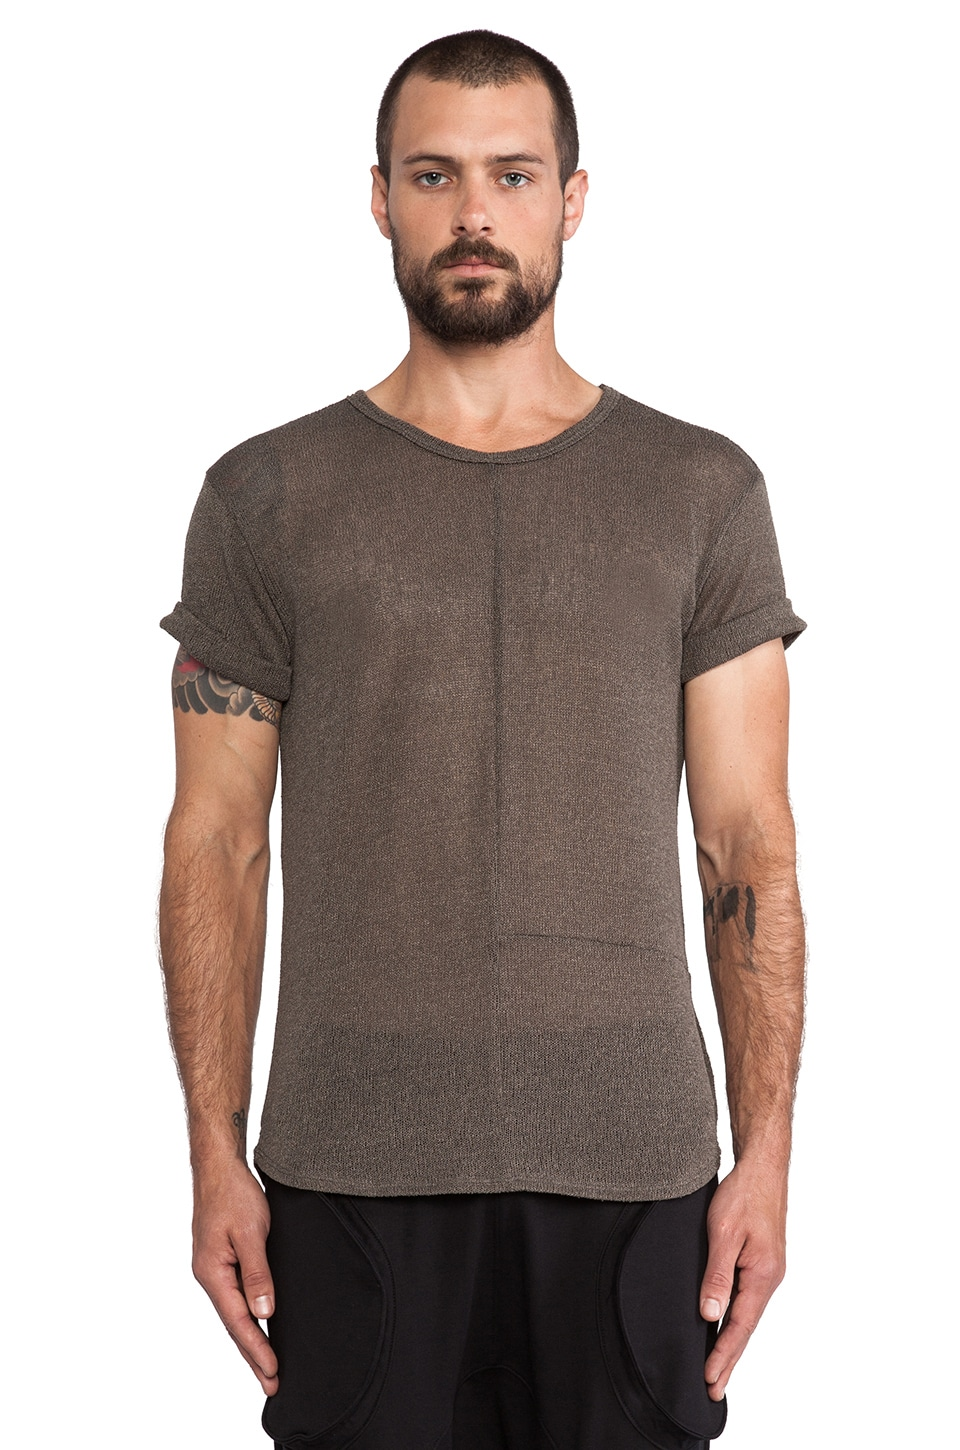 Post Bellum Combo Paneled Torque Tee in Moss & Hunter